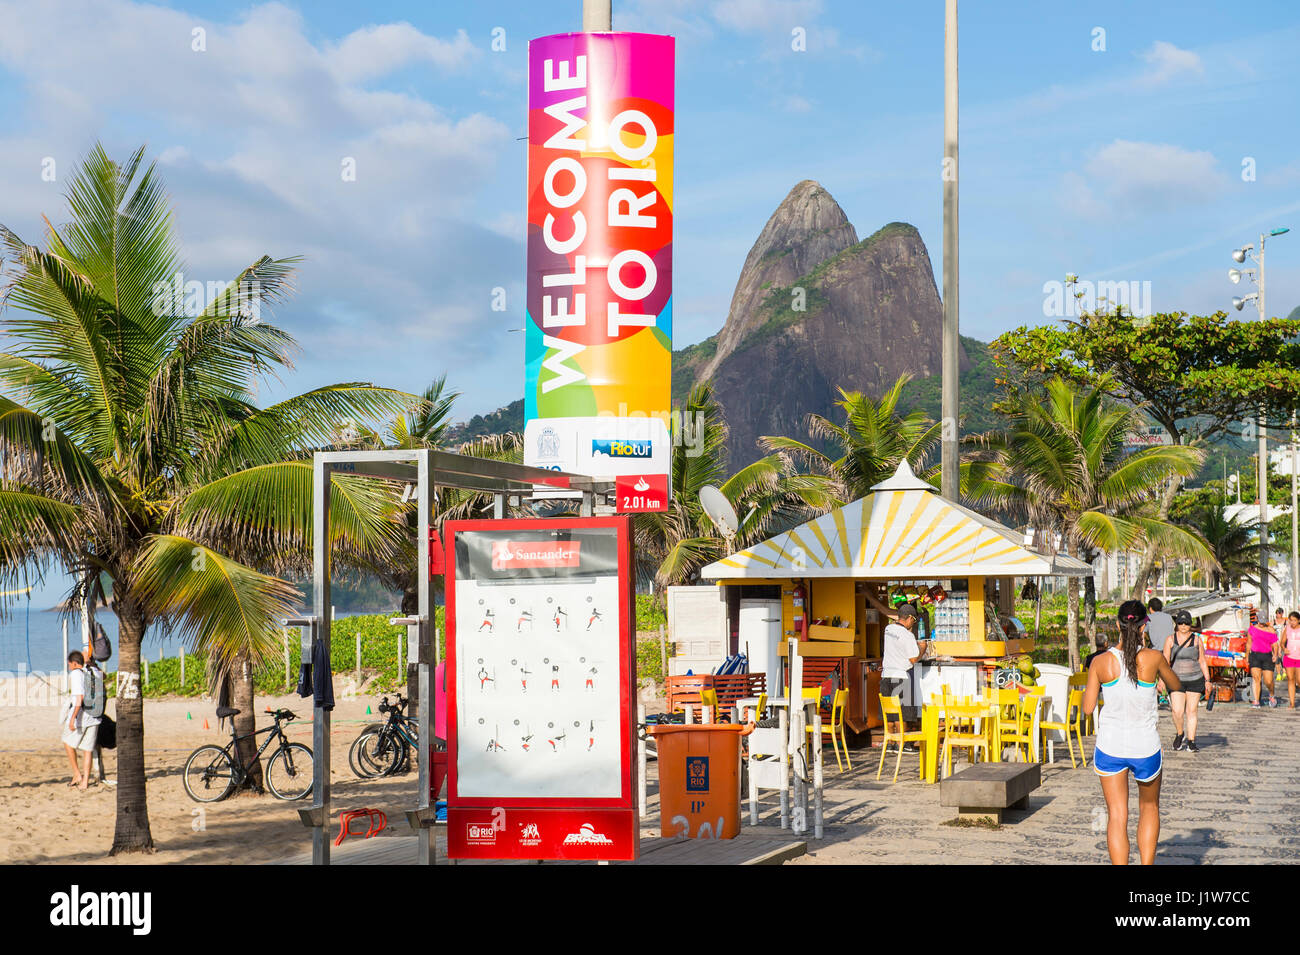 RIO DE JANEIRO - FEBRUARY 21, 2017: Colorful Welcome to Rio sign stands above Ipanema Beach as locals pass on the - Stock Image